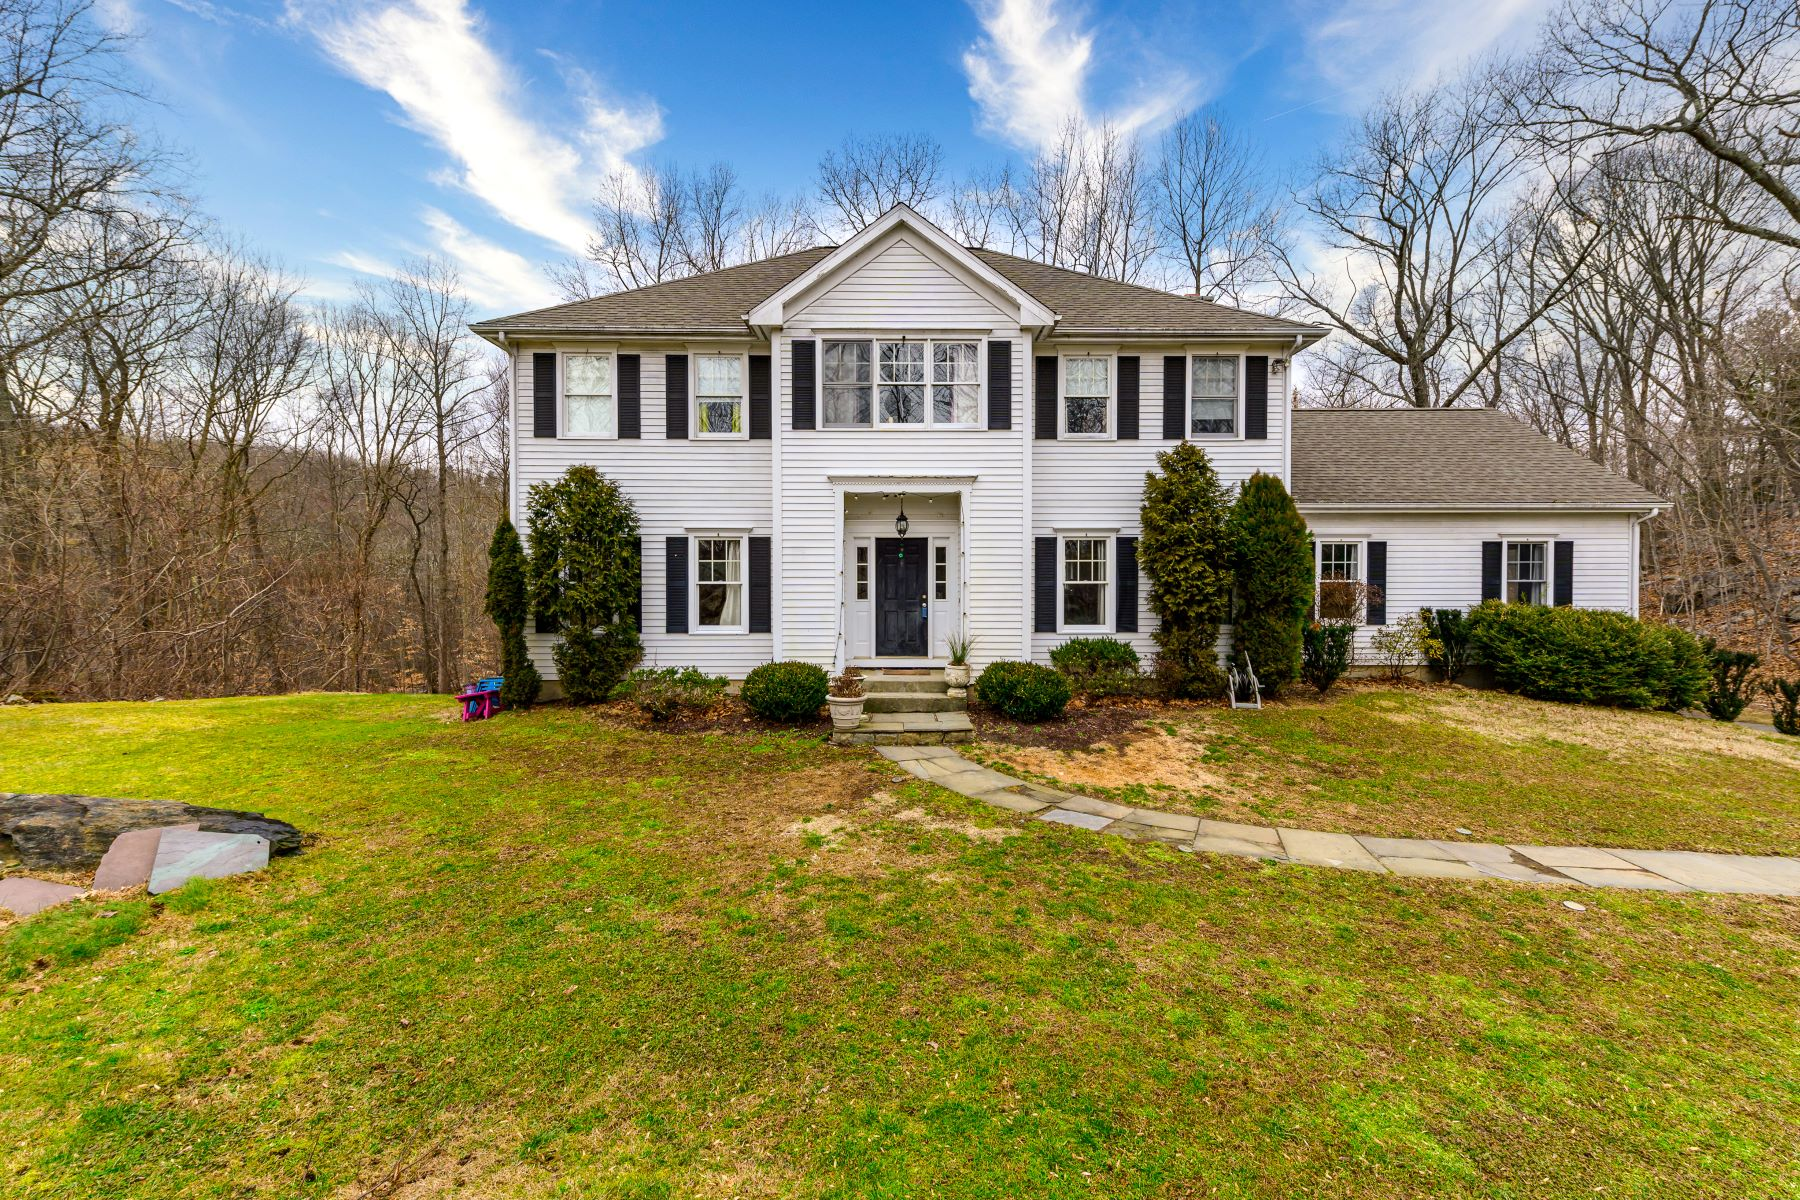 Single Family Homes for Active at 4 Bedroom Colonial 47 Chessor Lane Wilton, Connecticut 06897 United States